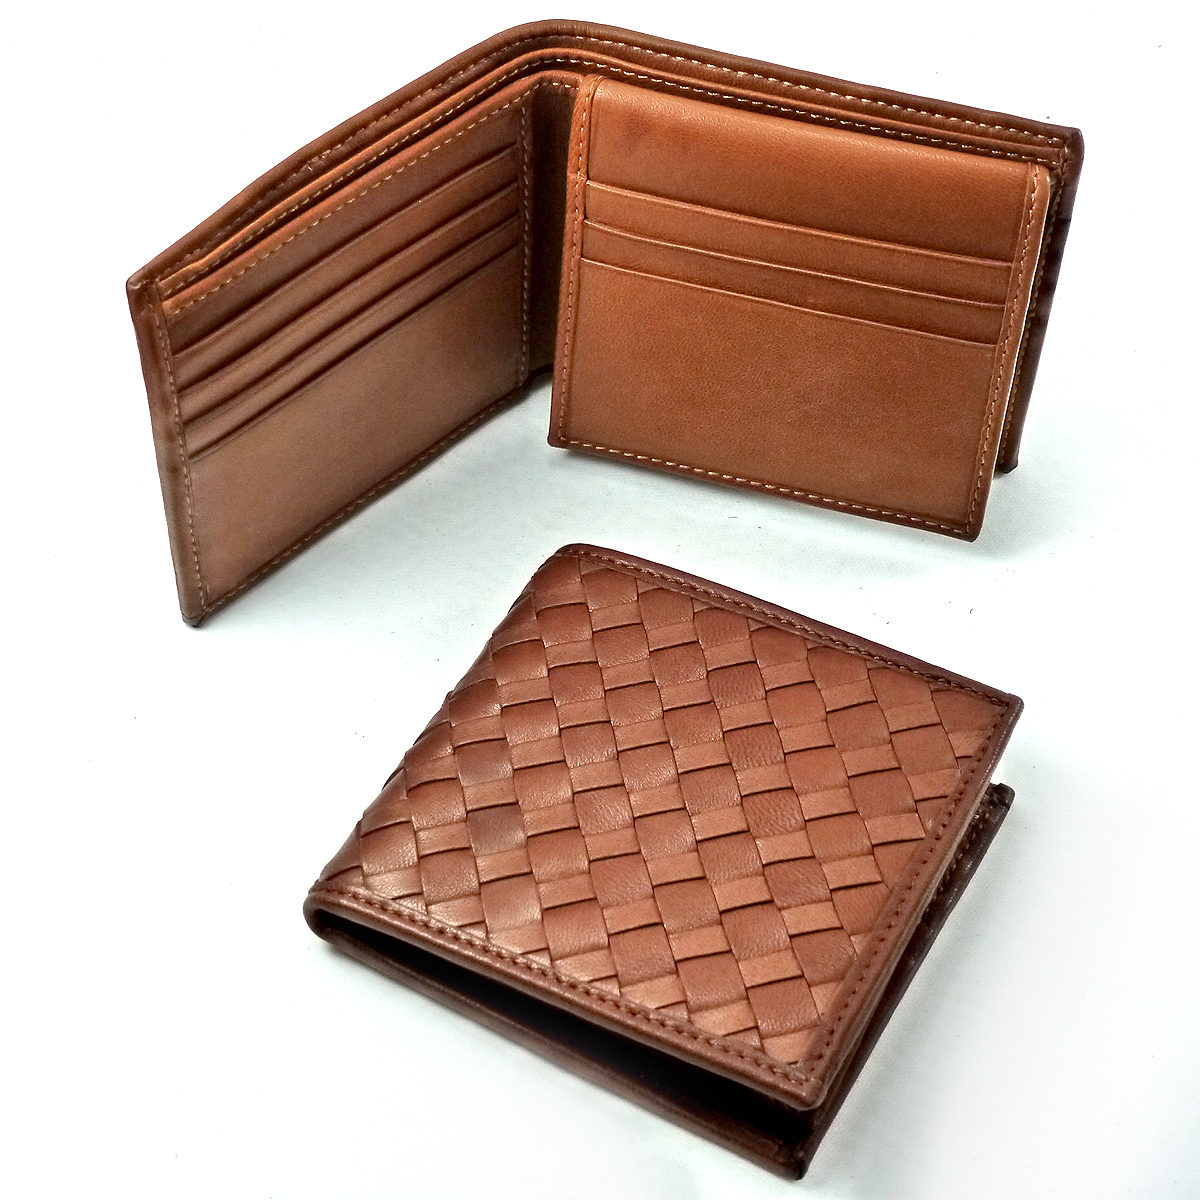 1322 men's wallet 11slot cards by Bottega Fiorentina